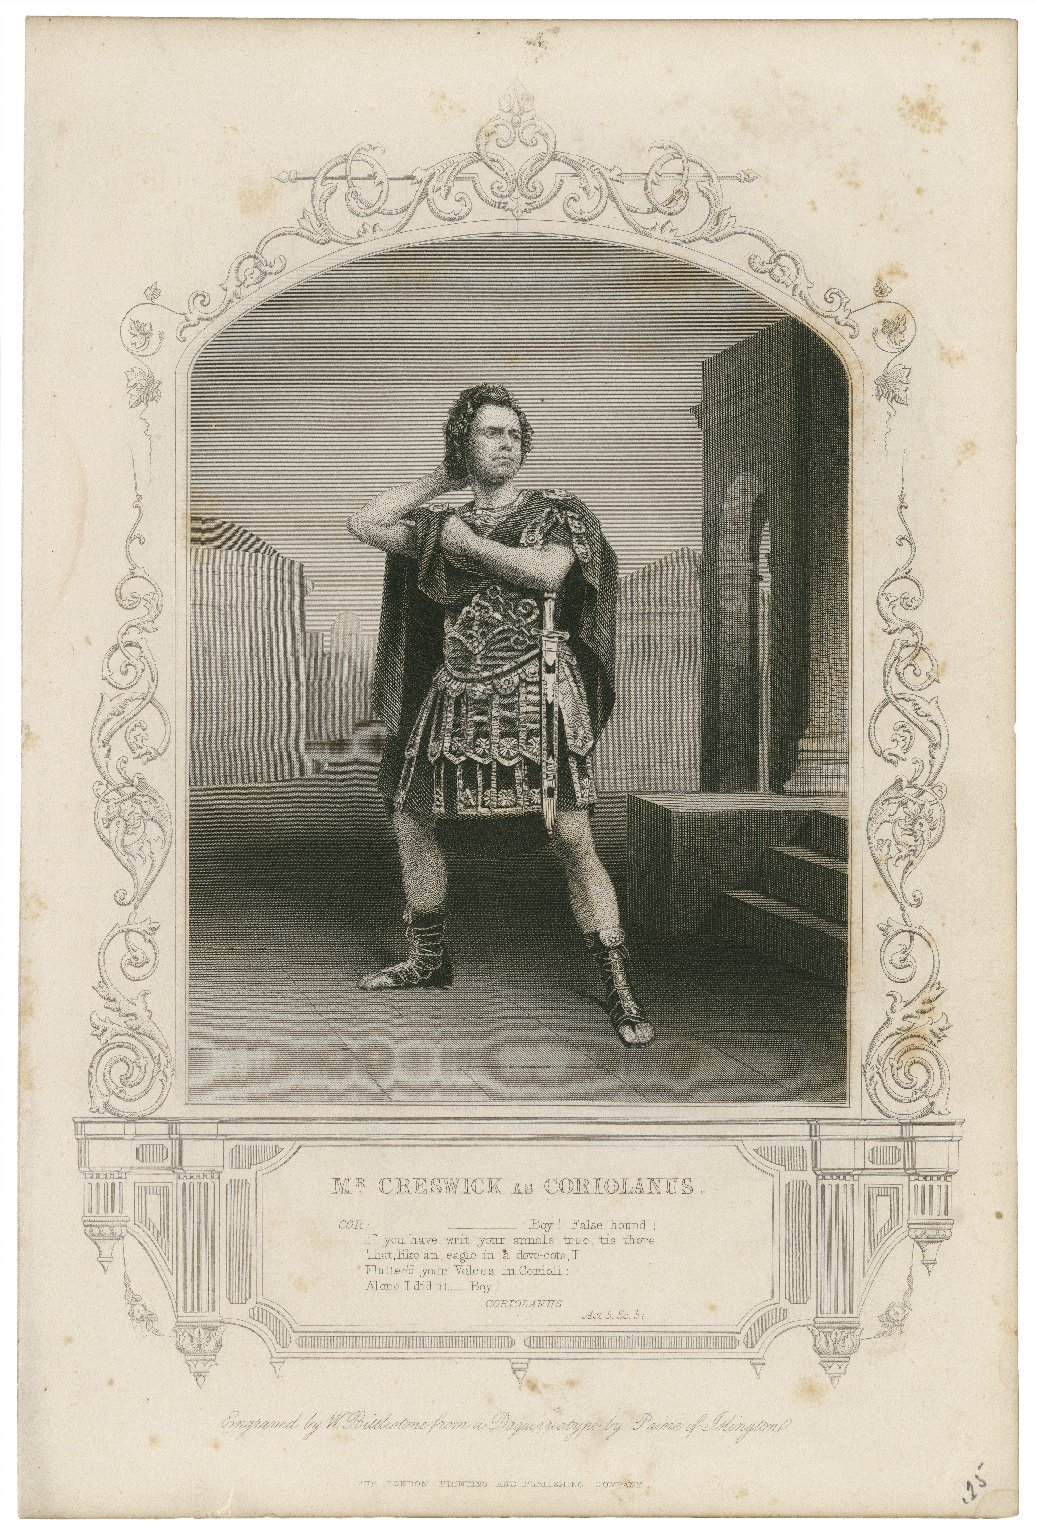 Mr. Creswick as Coriolanus [in Shakespeare's Coriolanus] [graphic] / engraved by W. Bittlestone from a daguerreotype by Paine of Islington.